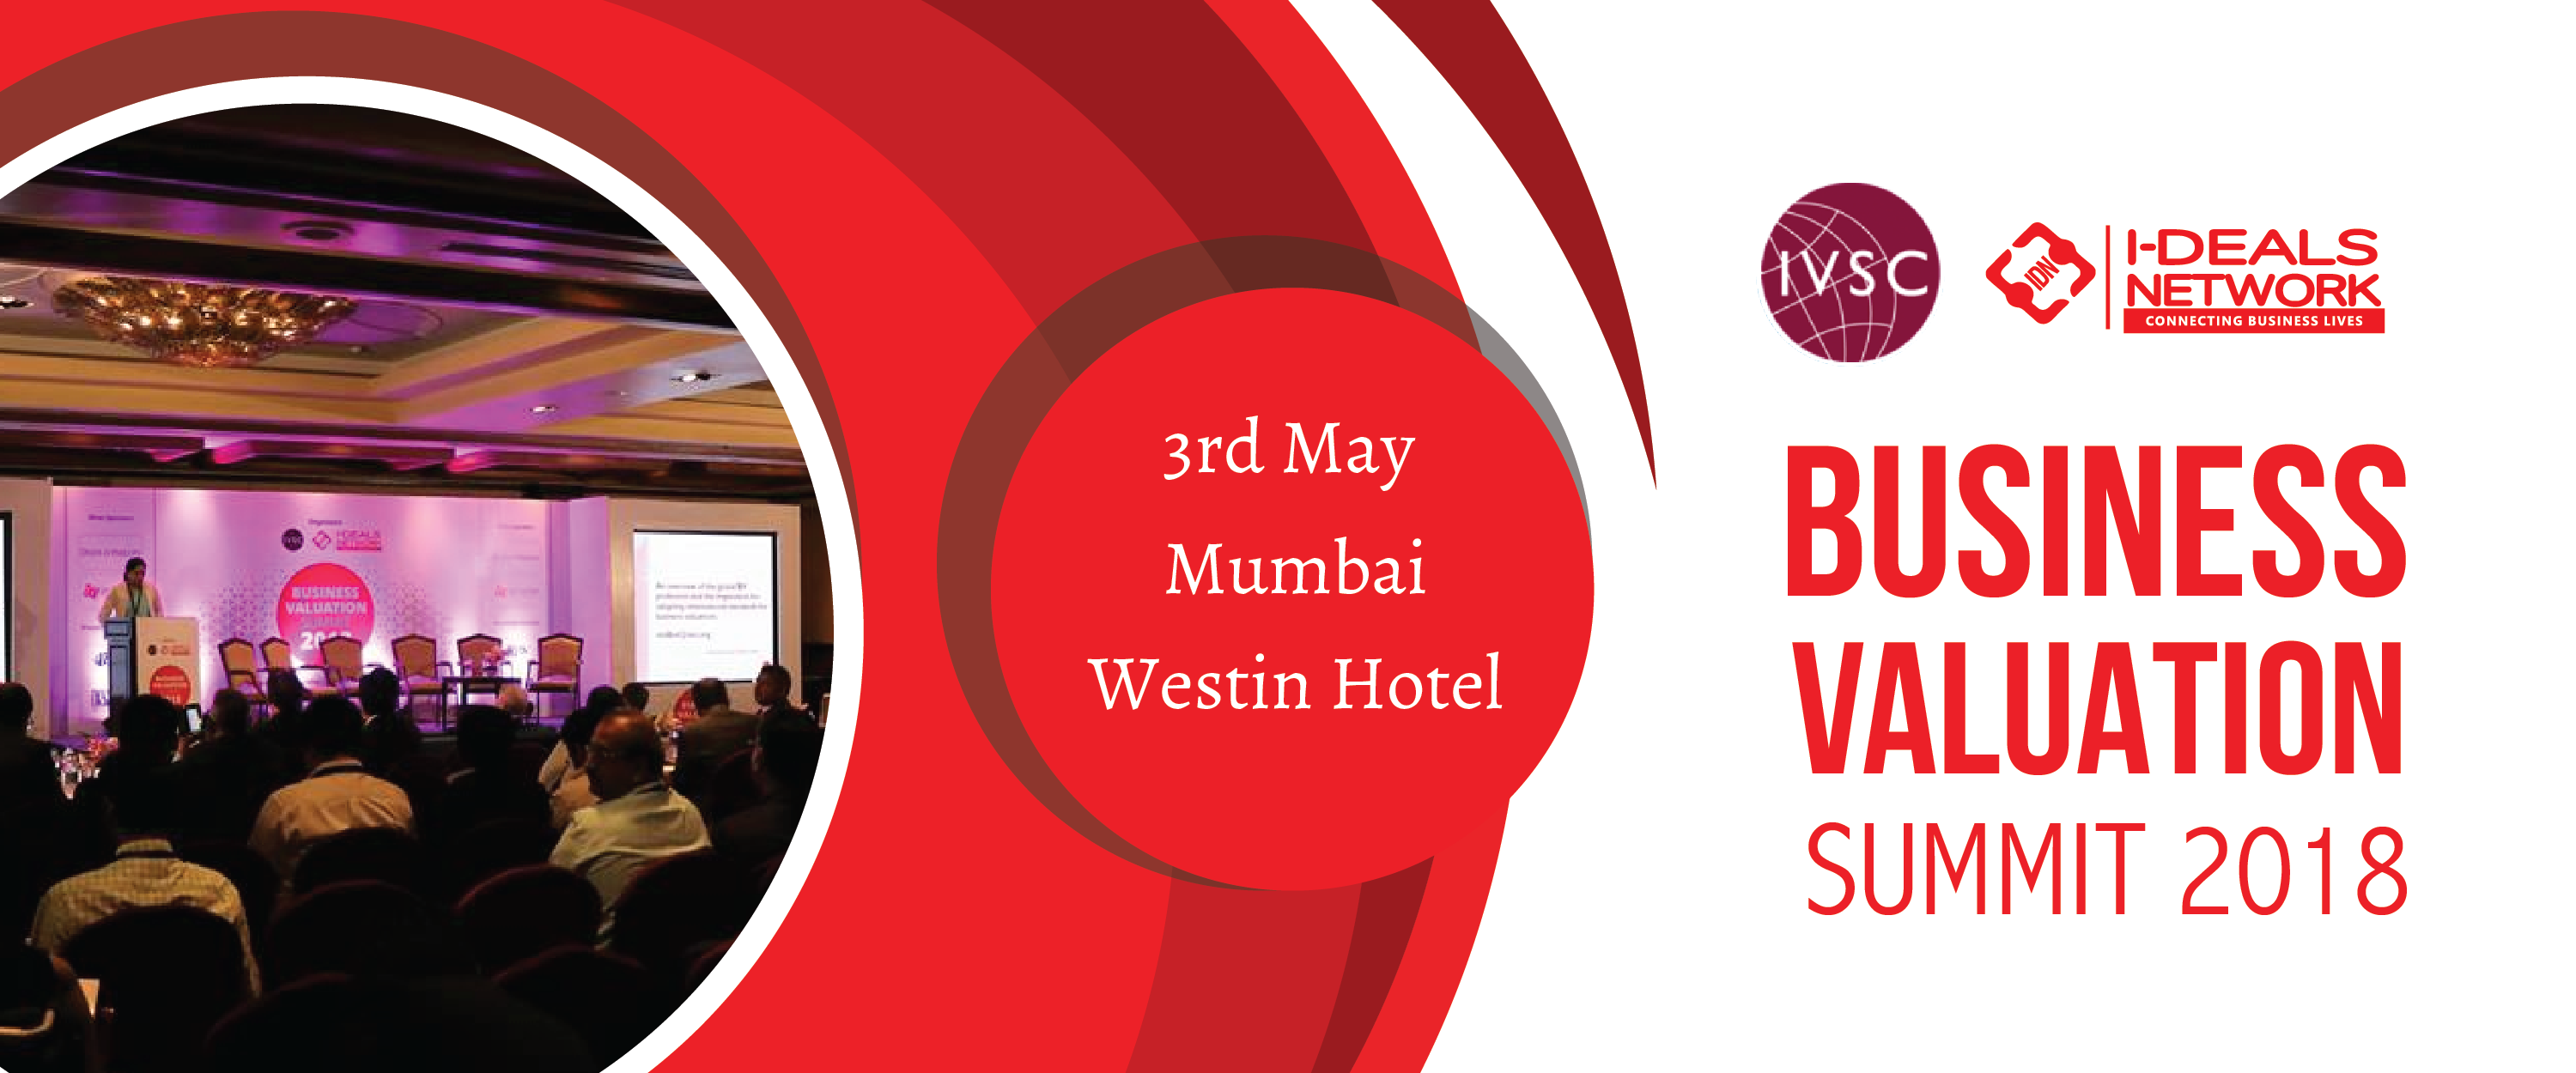 Business Valuation Summit 3rd May I Deals Network